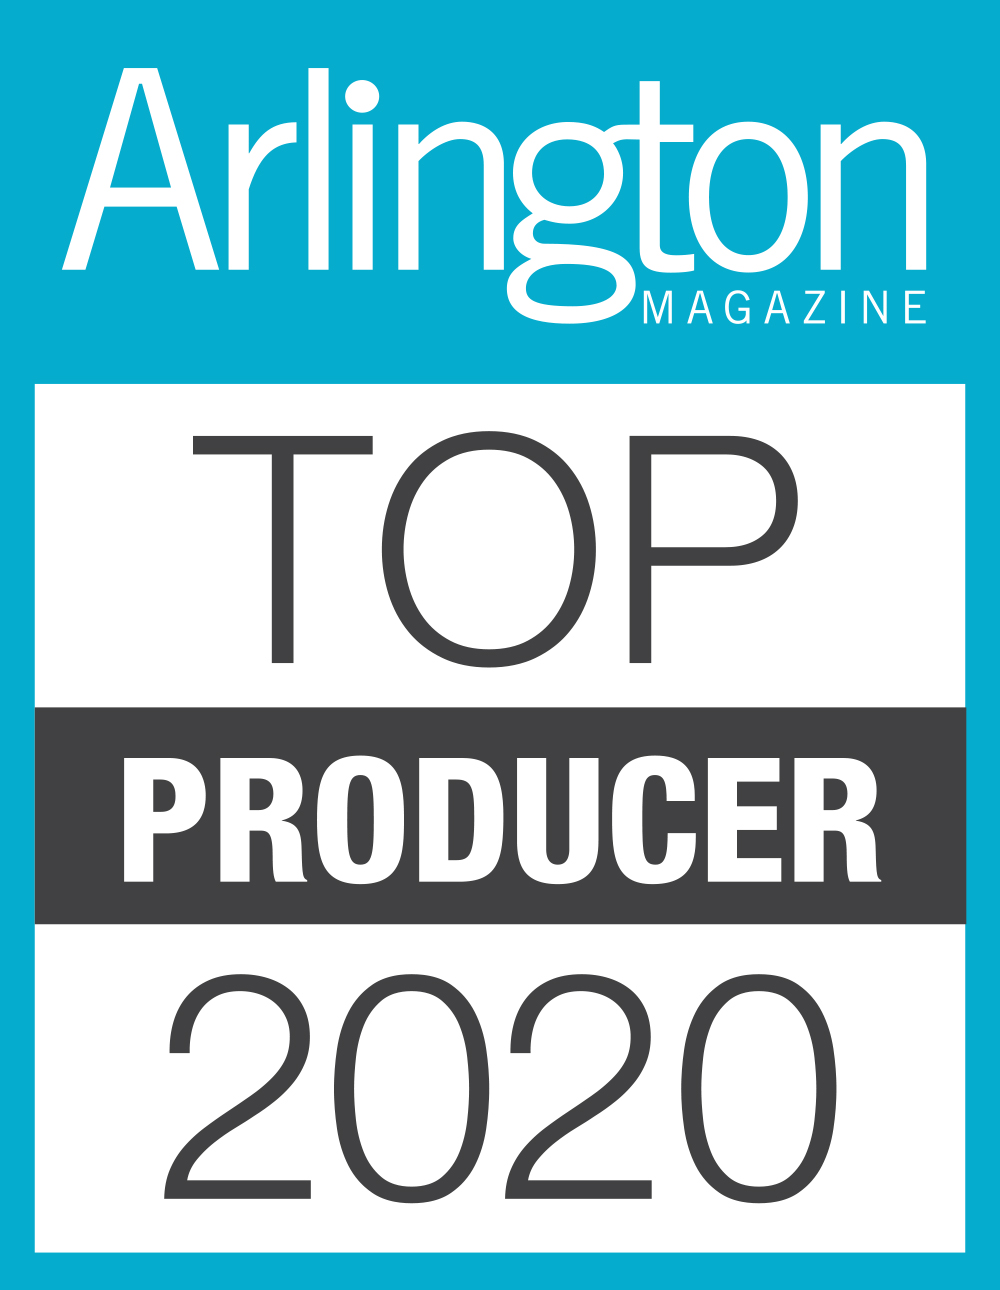 Arlington Top Producer 2020